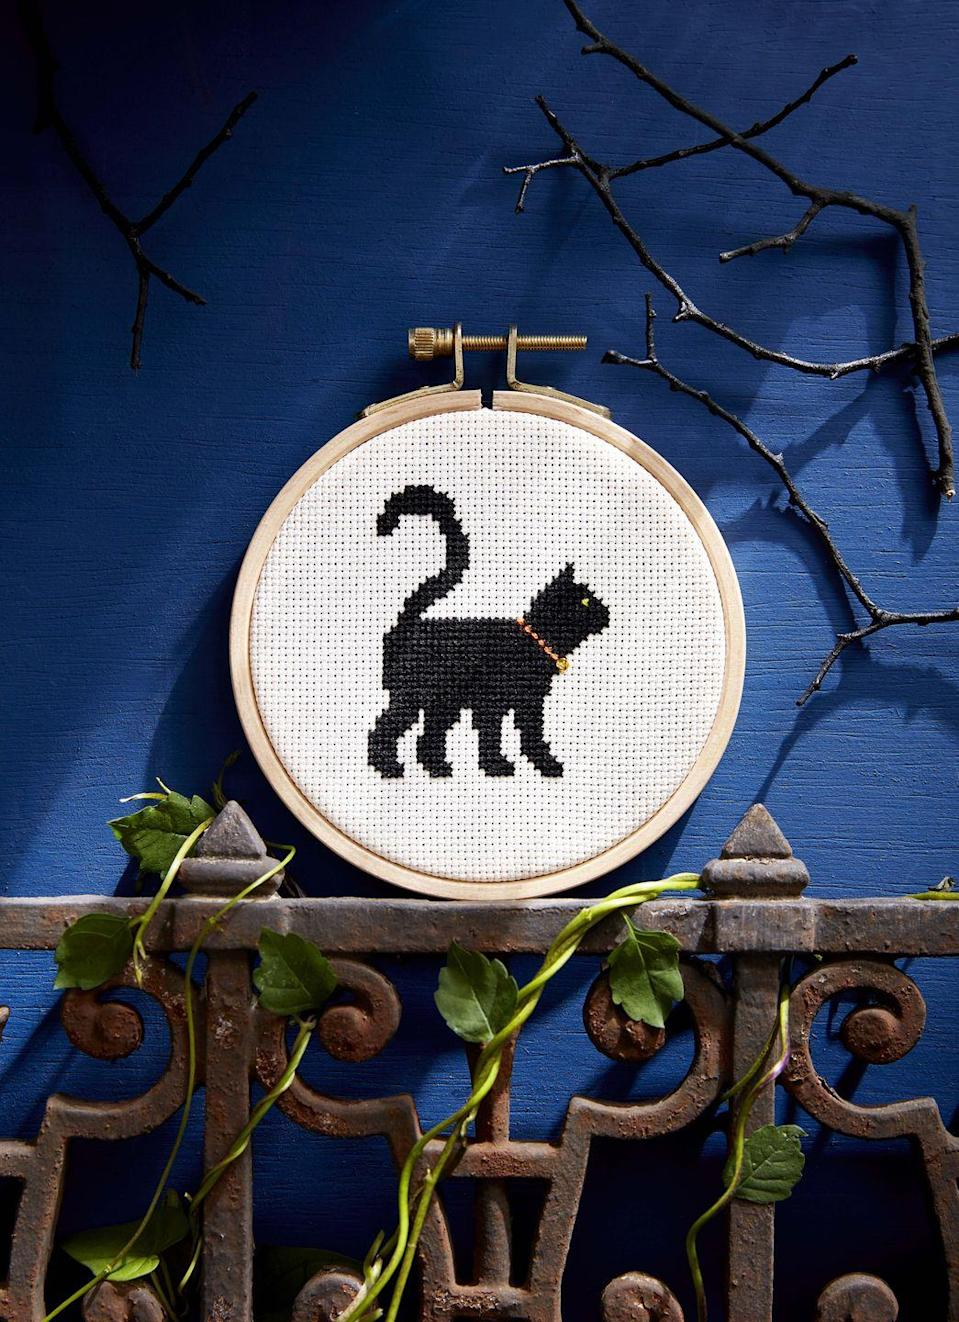 "<p>Put little fingers to work with this simple cross-stitch pattern. It's primarily one color, so it will be easy for a child to make with a little supervision.</p><p><strong><a href=""https://www.countryliving.com/diy-crafts/a6380/cross-stitch/"" rel=""nofollow noopener"" target=""_blank"" data-ylk=""slk:Get the pattern."" class=""link rapid-noclick-resp"">Get the pattern.</a></strong></p>"